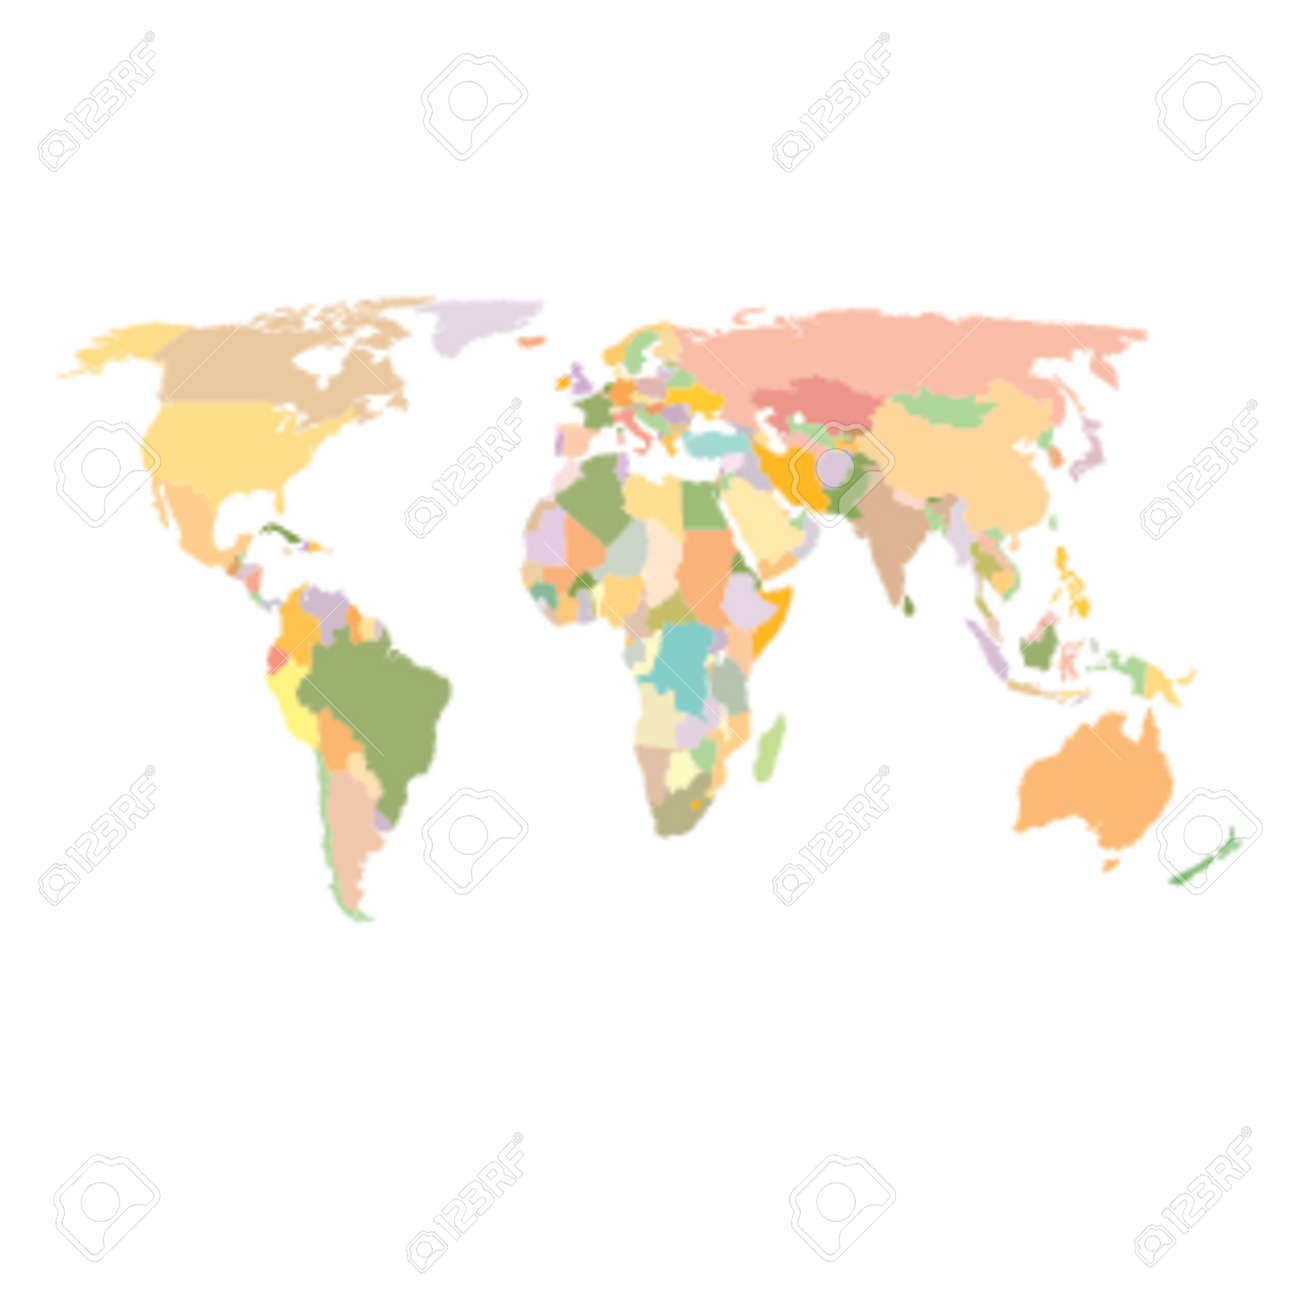 World map colored africa america asia europe oceania world map colored africa america asia europe oceania stock vector gumiabroncs Image collections